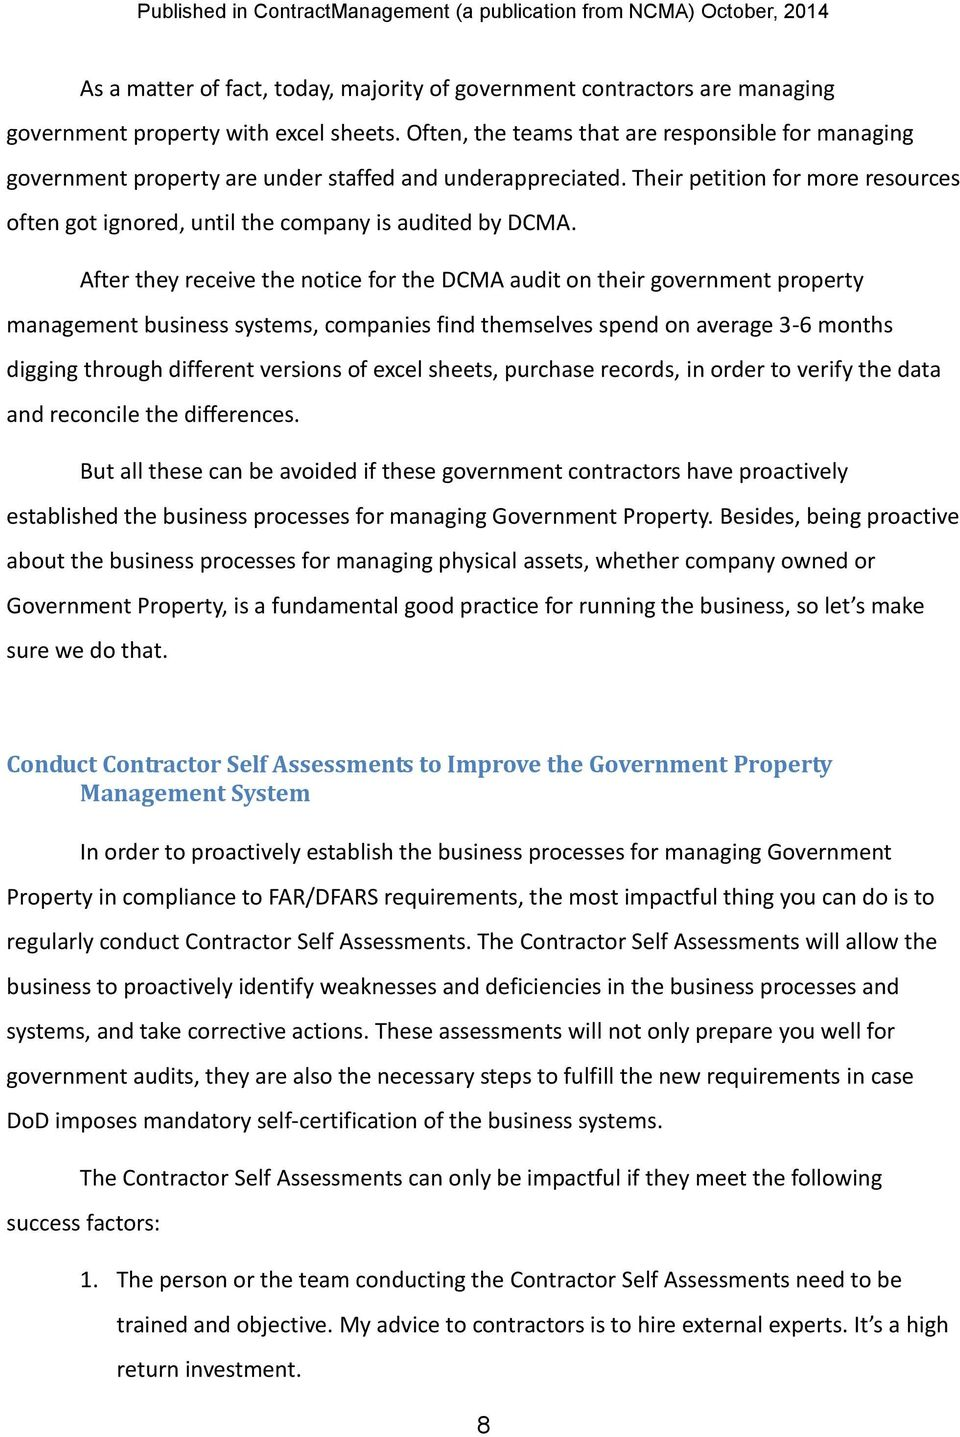 Prepare for Self-Certification of the Government Property Management ...